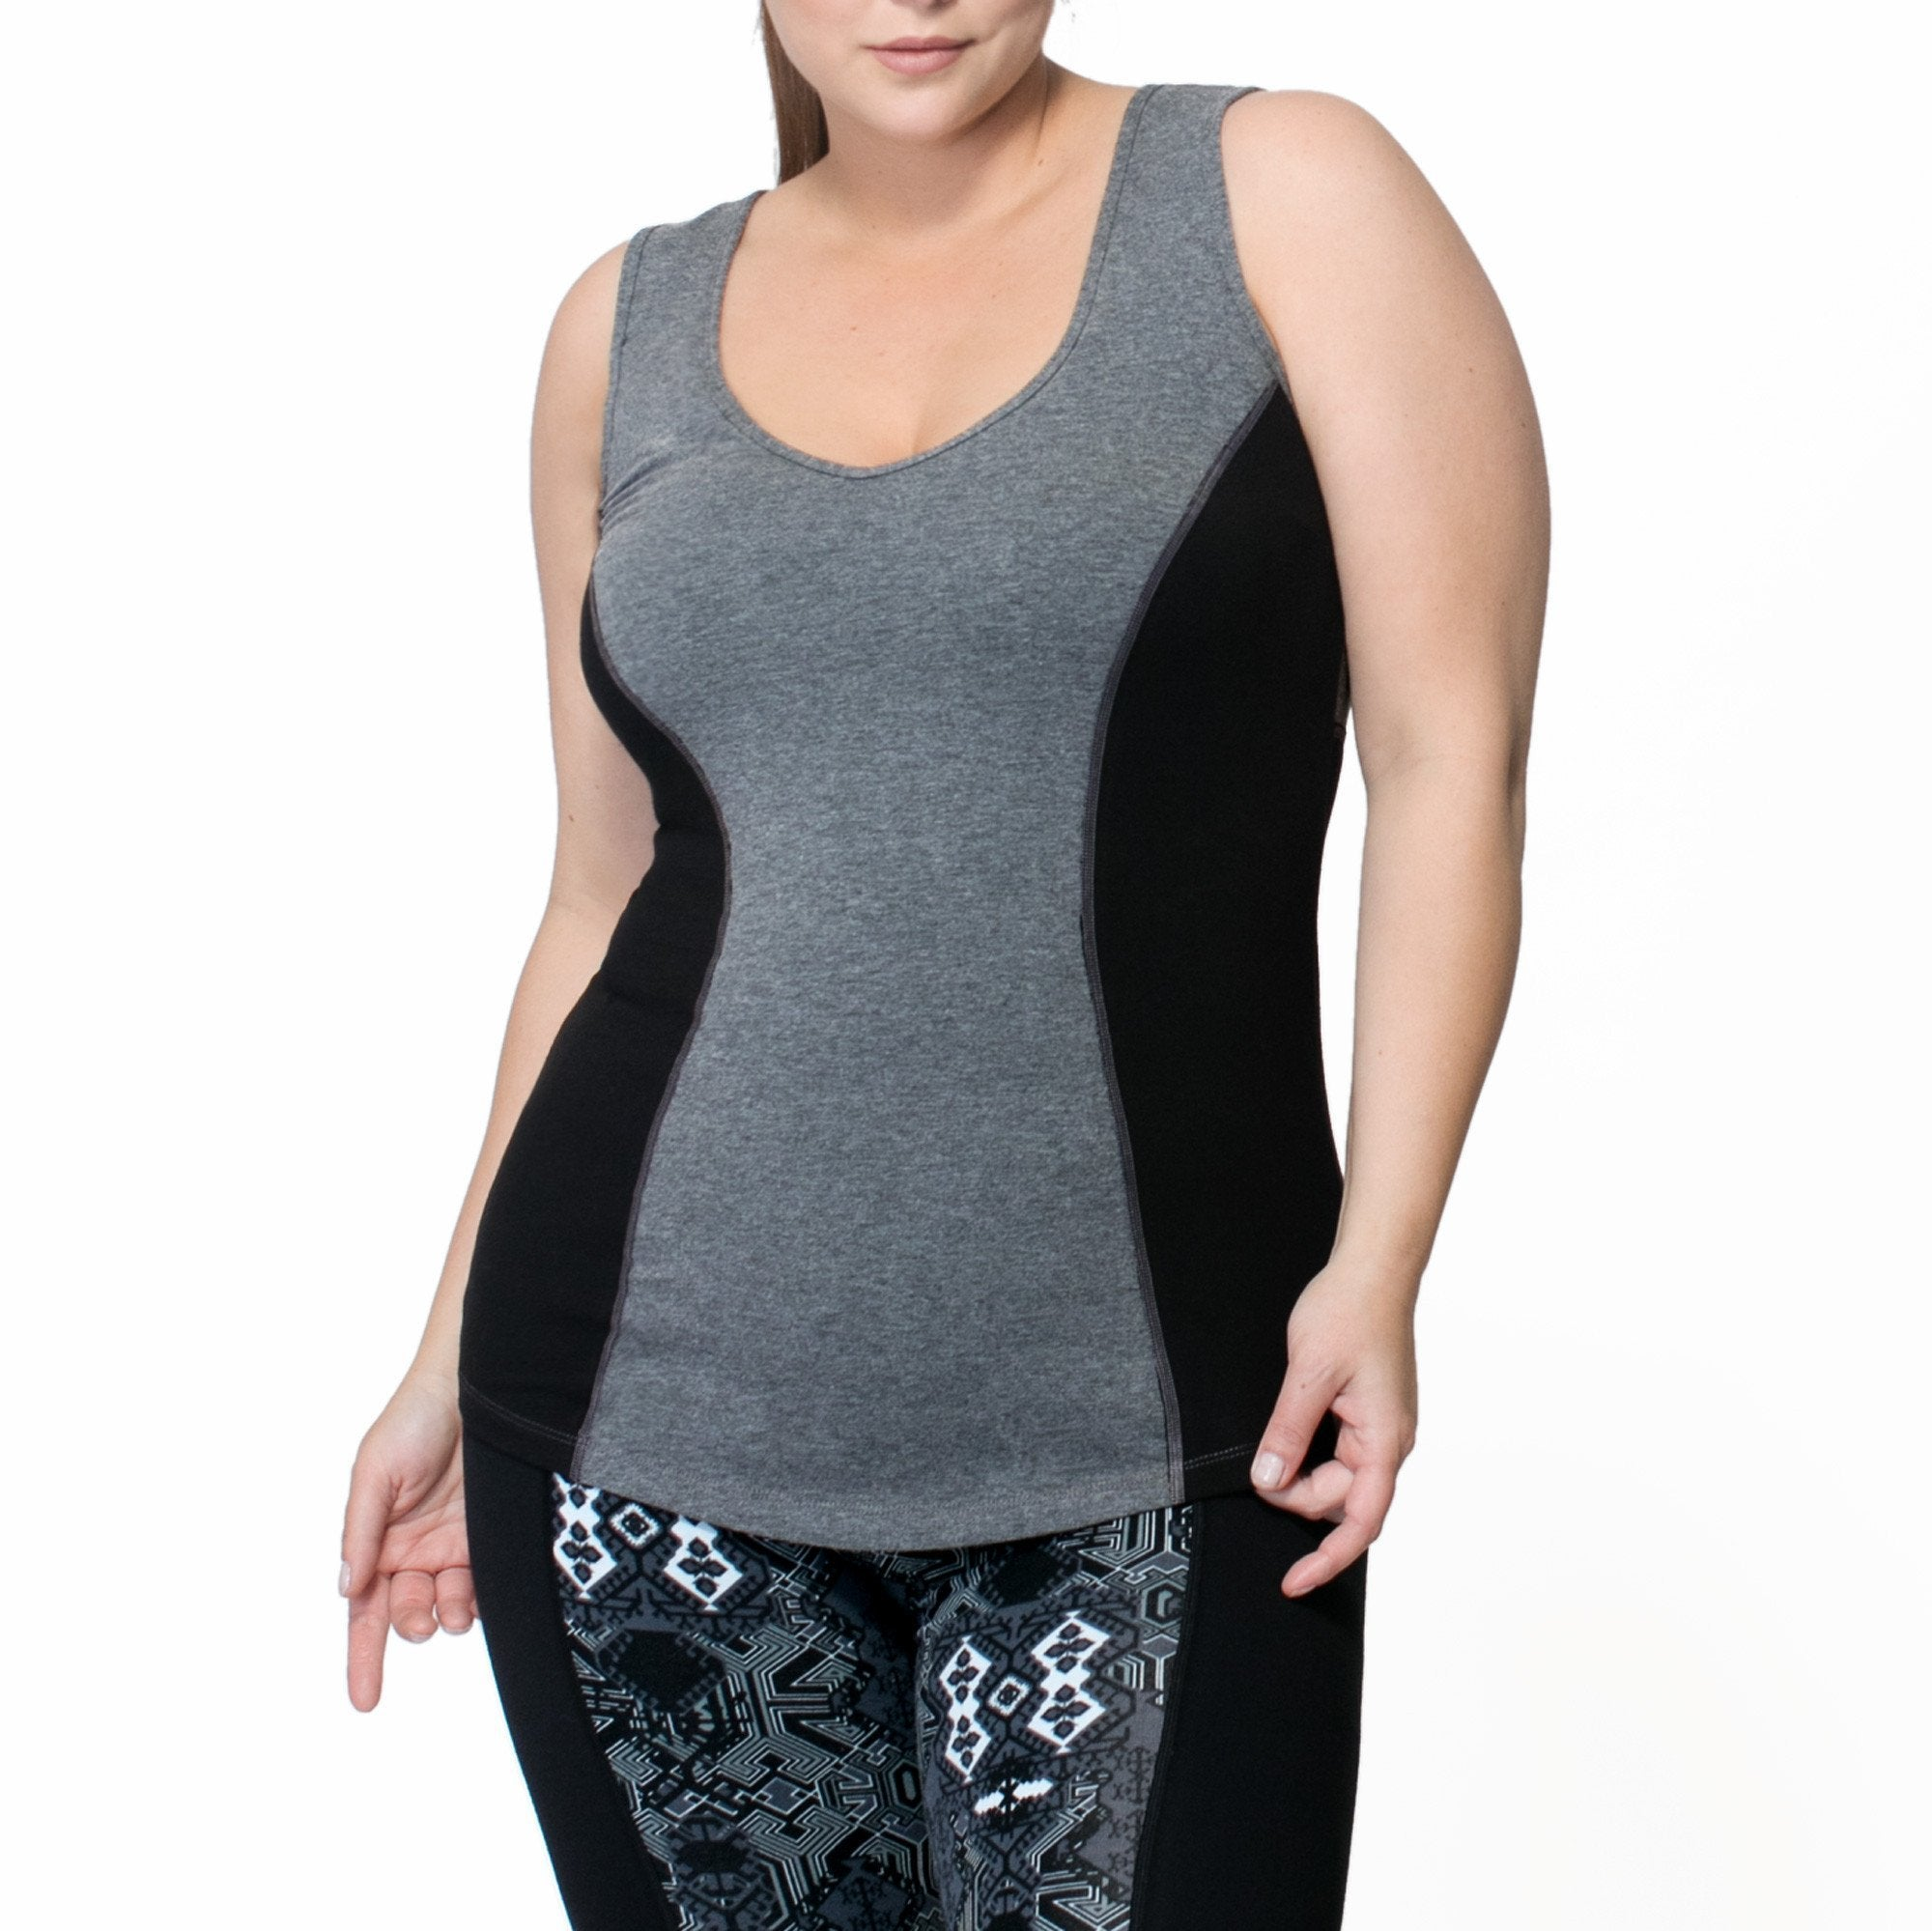 Janis Tank - Rainbeau Curves, 14/16 / Ink Blue, activewear, athleisure, fitness, workout, gym, performance, womens, ladies, plus size, curvy, full figured, spandex, cotton, polyester - 1